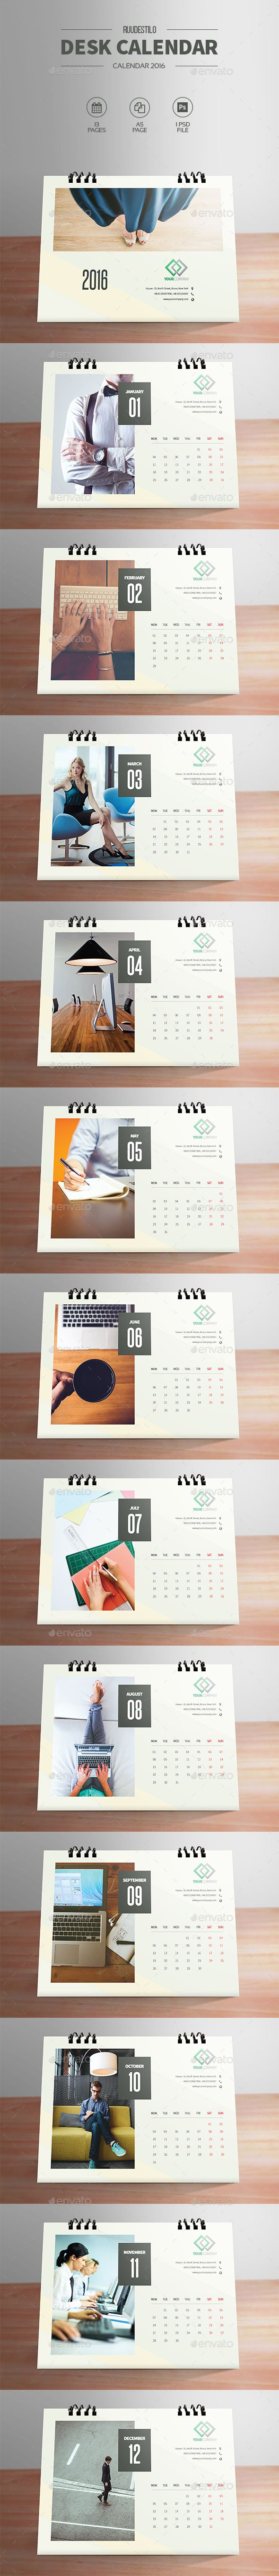 Clean Desktop Calendar 2016, 2017, 2018 - Calendars Stationery